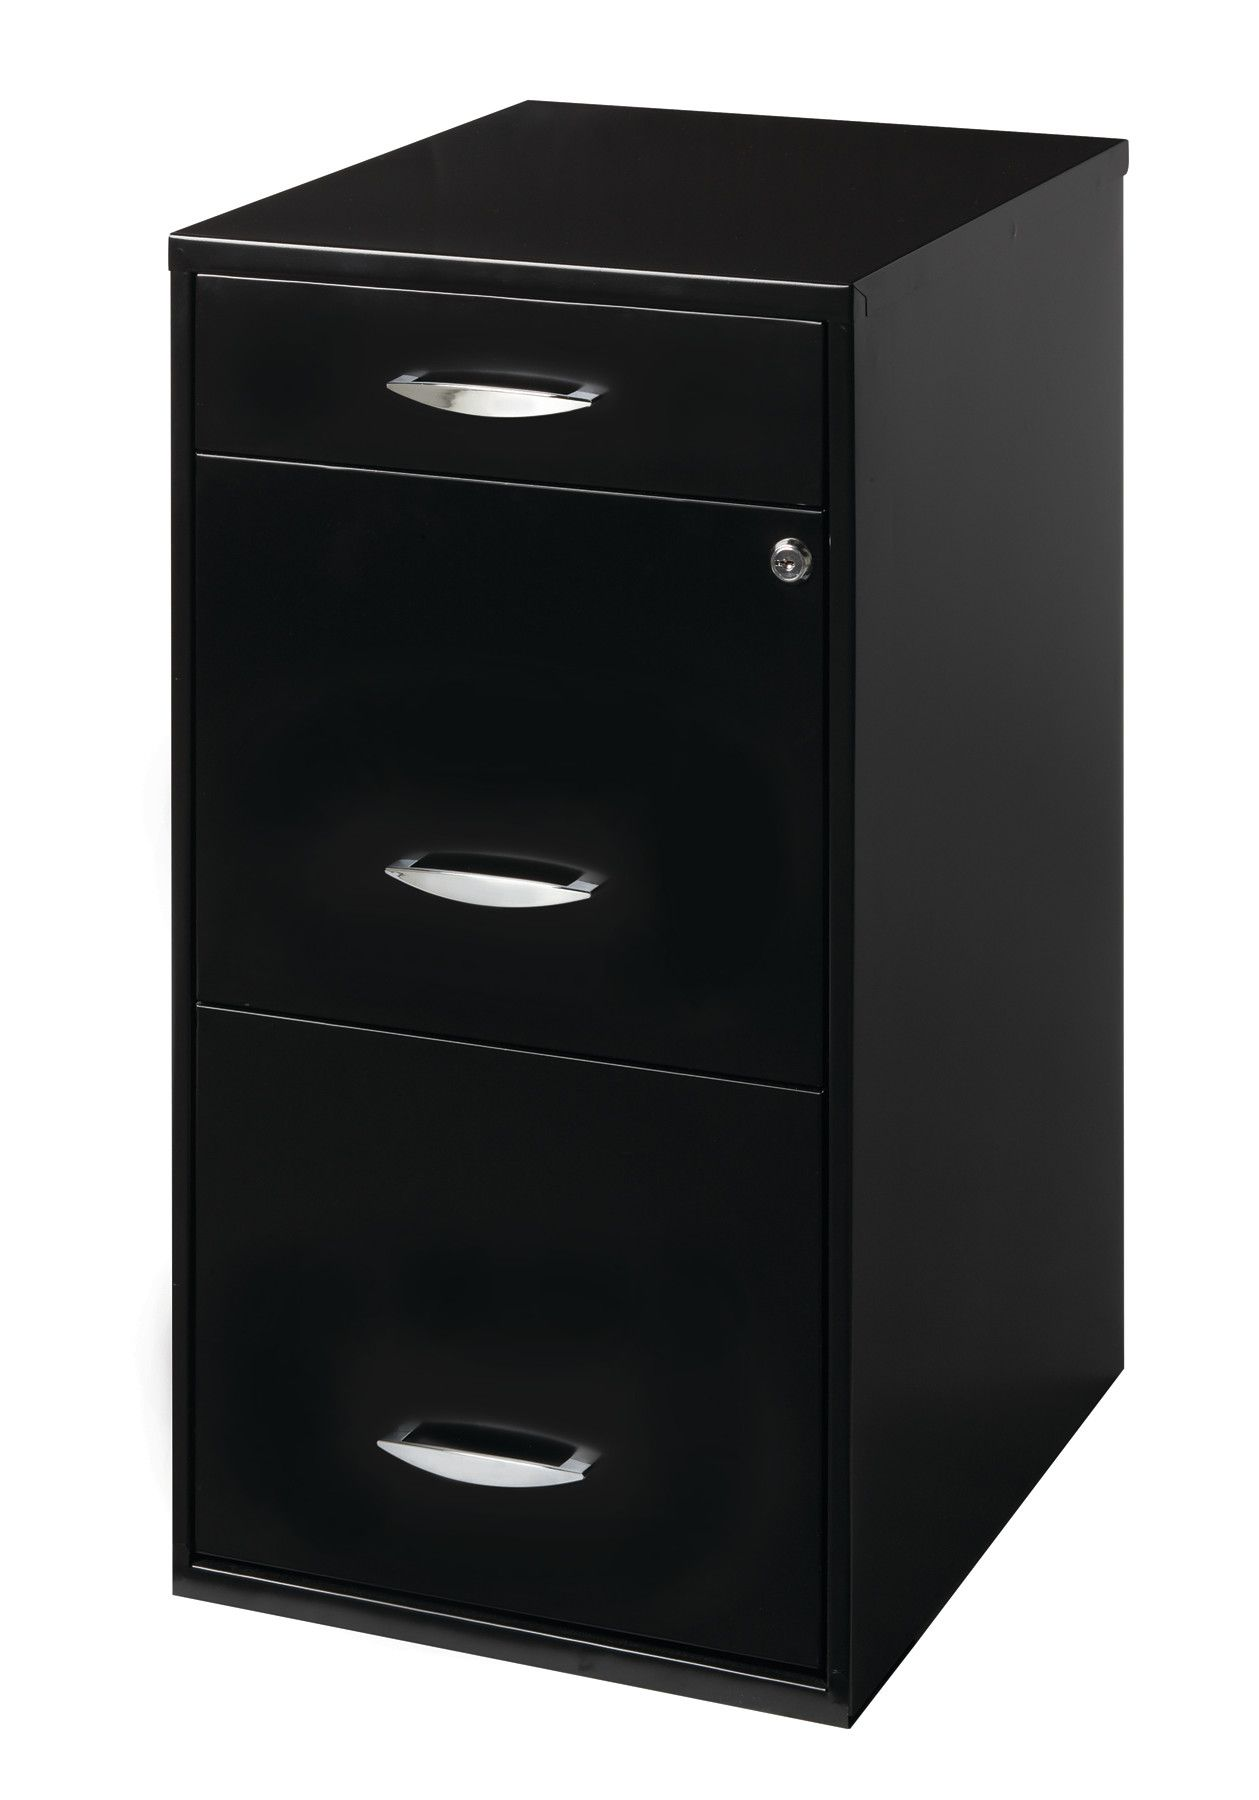 Space Solutions Three-Drawer File Cabinet